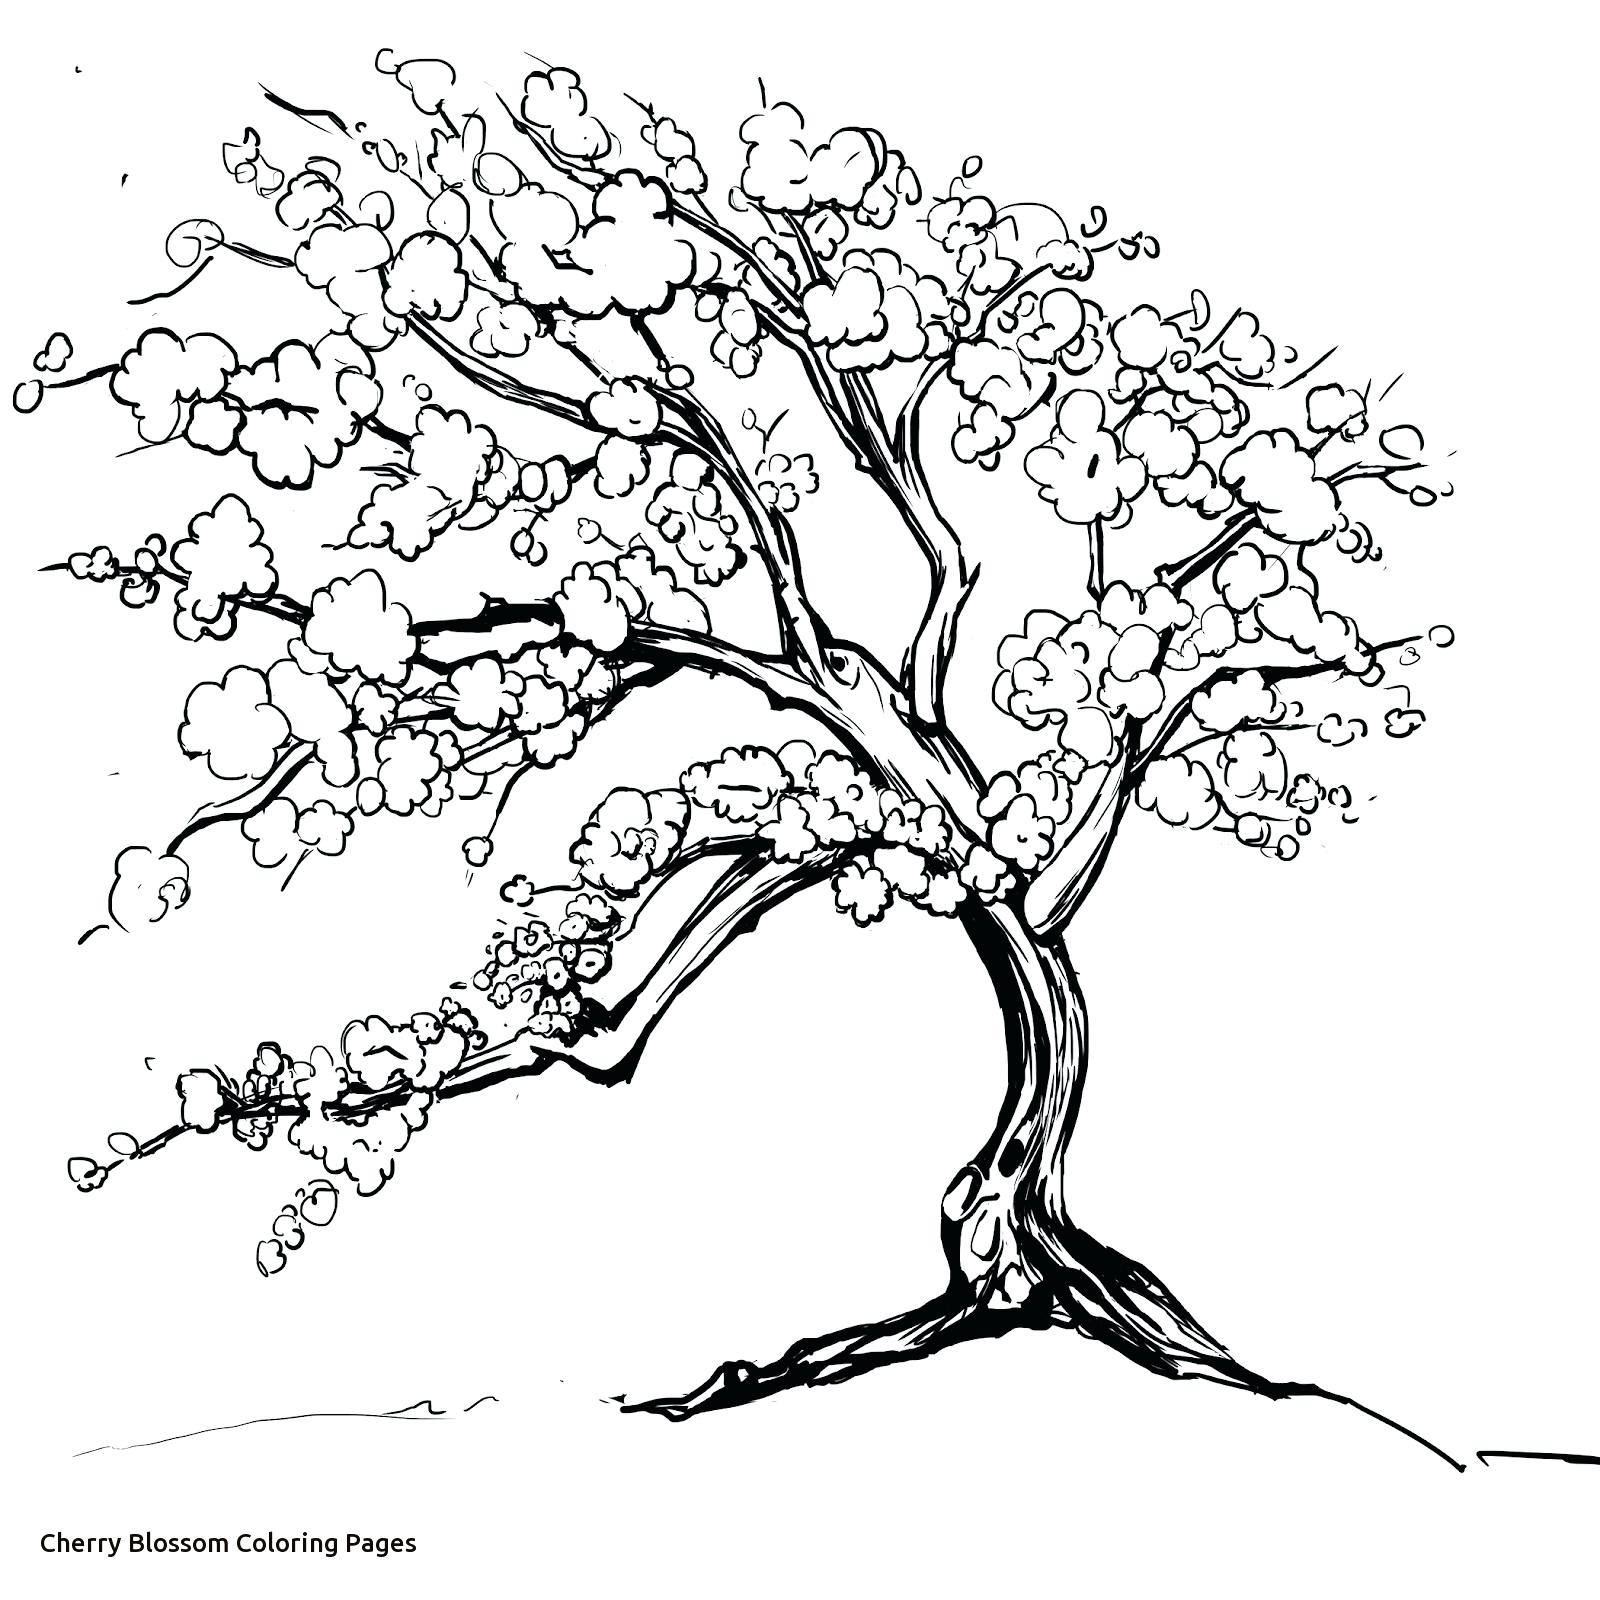 1600x1600 Coloring Cherry Blossom Coloring Pages Within Tree Page Glum